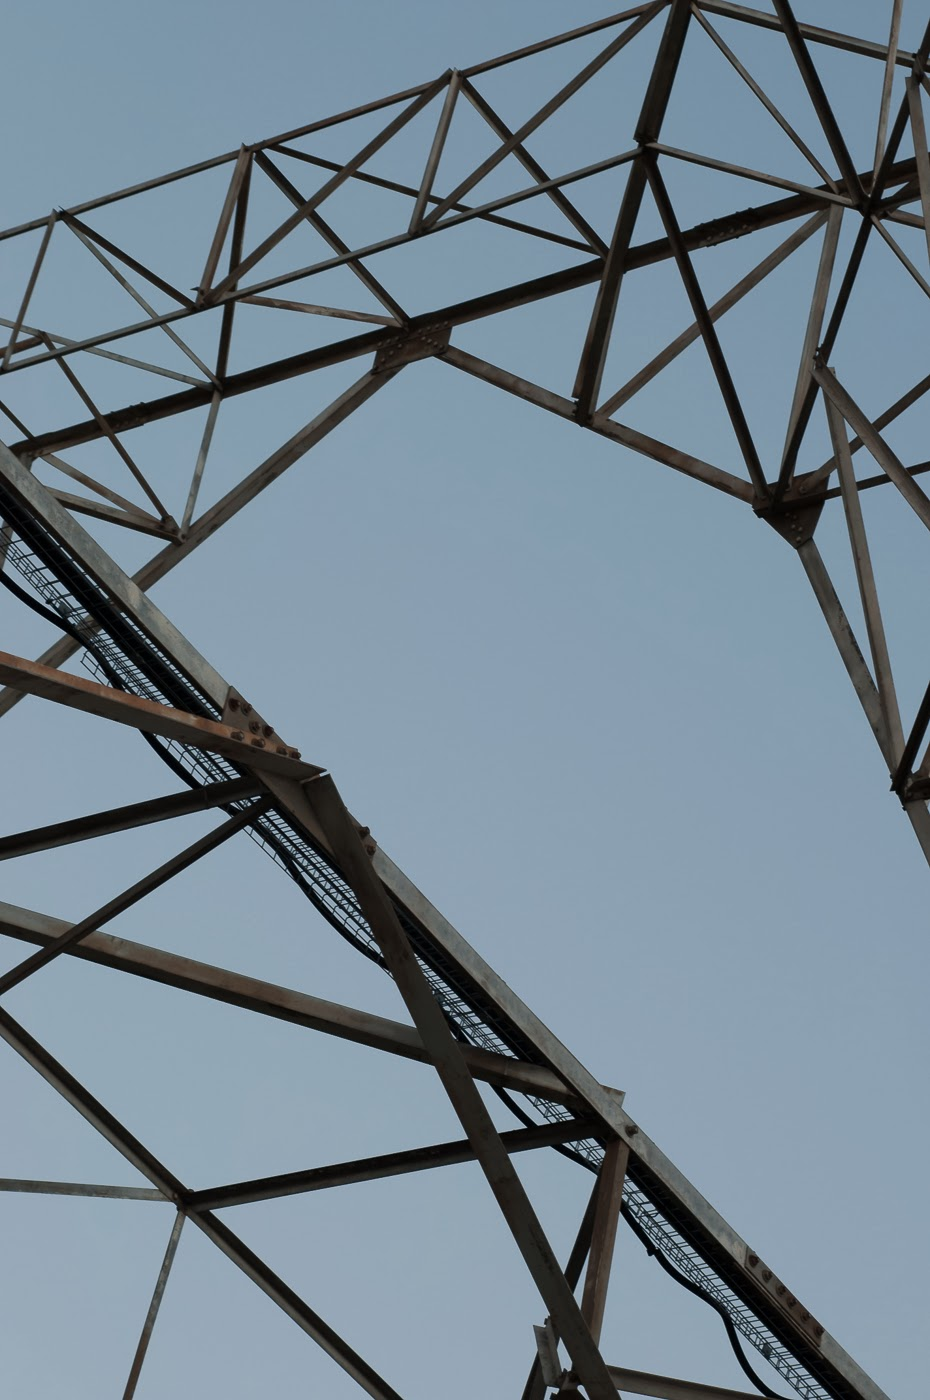 Melbourne, Australia, architecture, architectural, architects, abstract, abstractional, abstraction tim macauley, detail, steel, structure, photographic artist, docklands, electrical pole, electicity, tower, giant, large